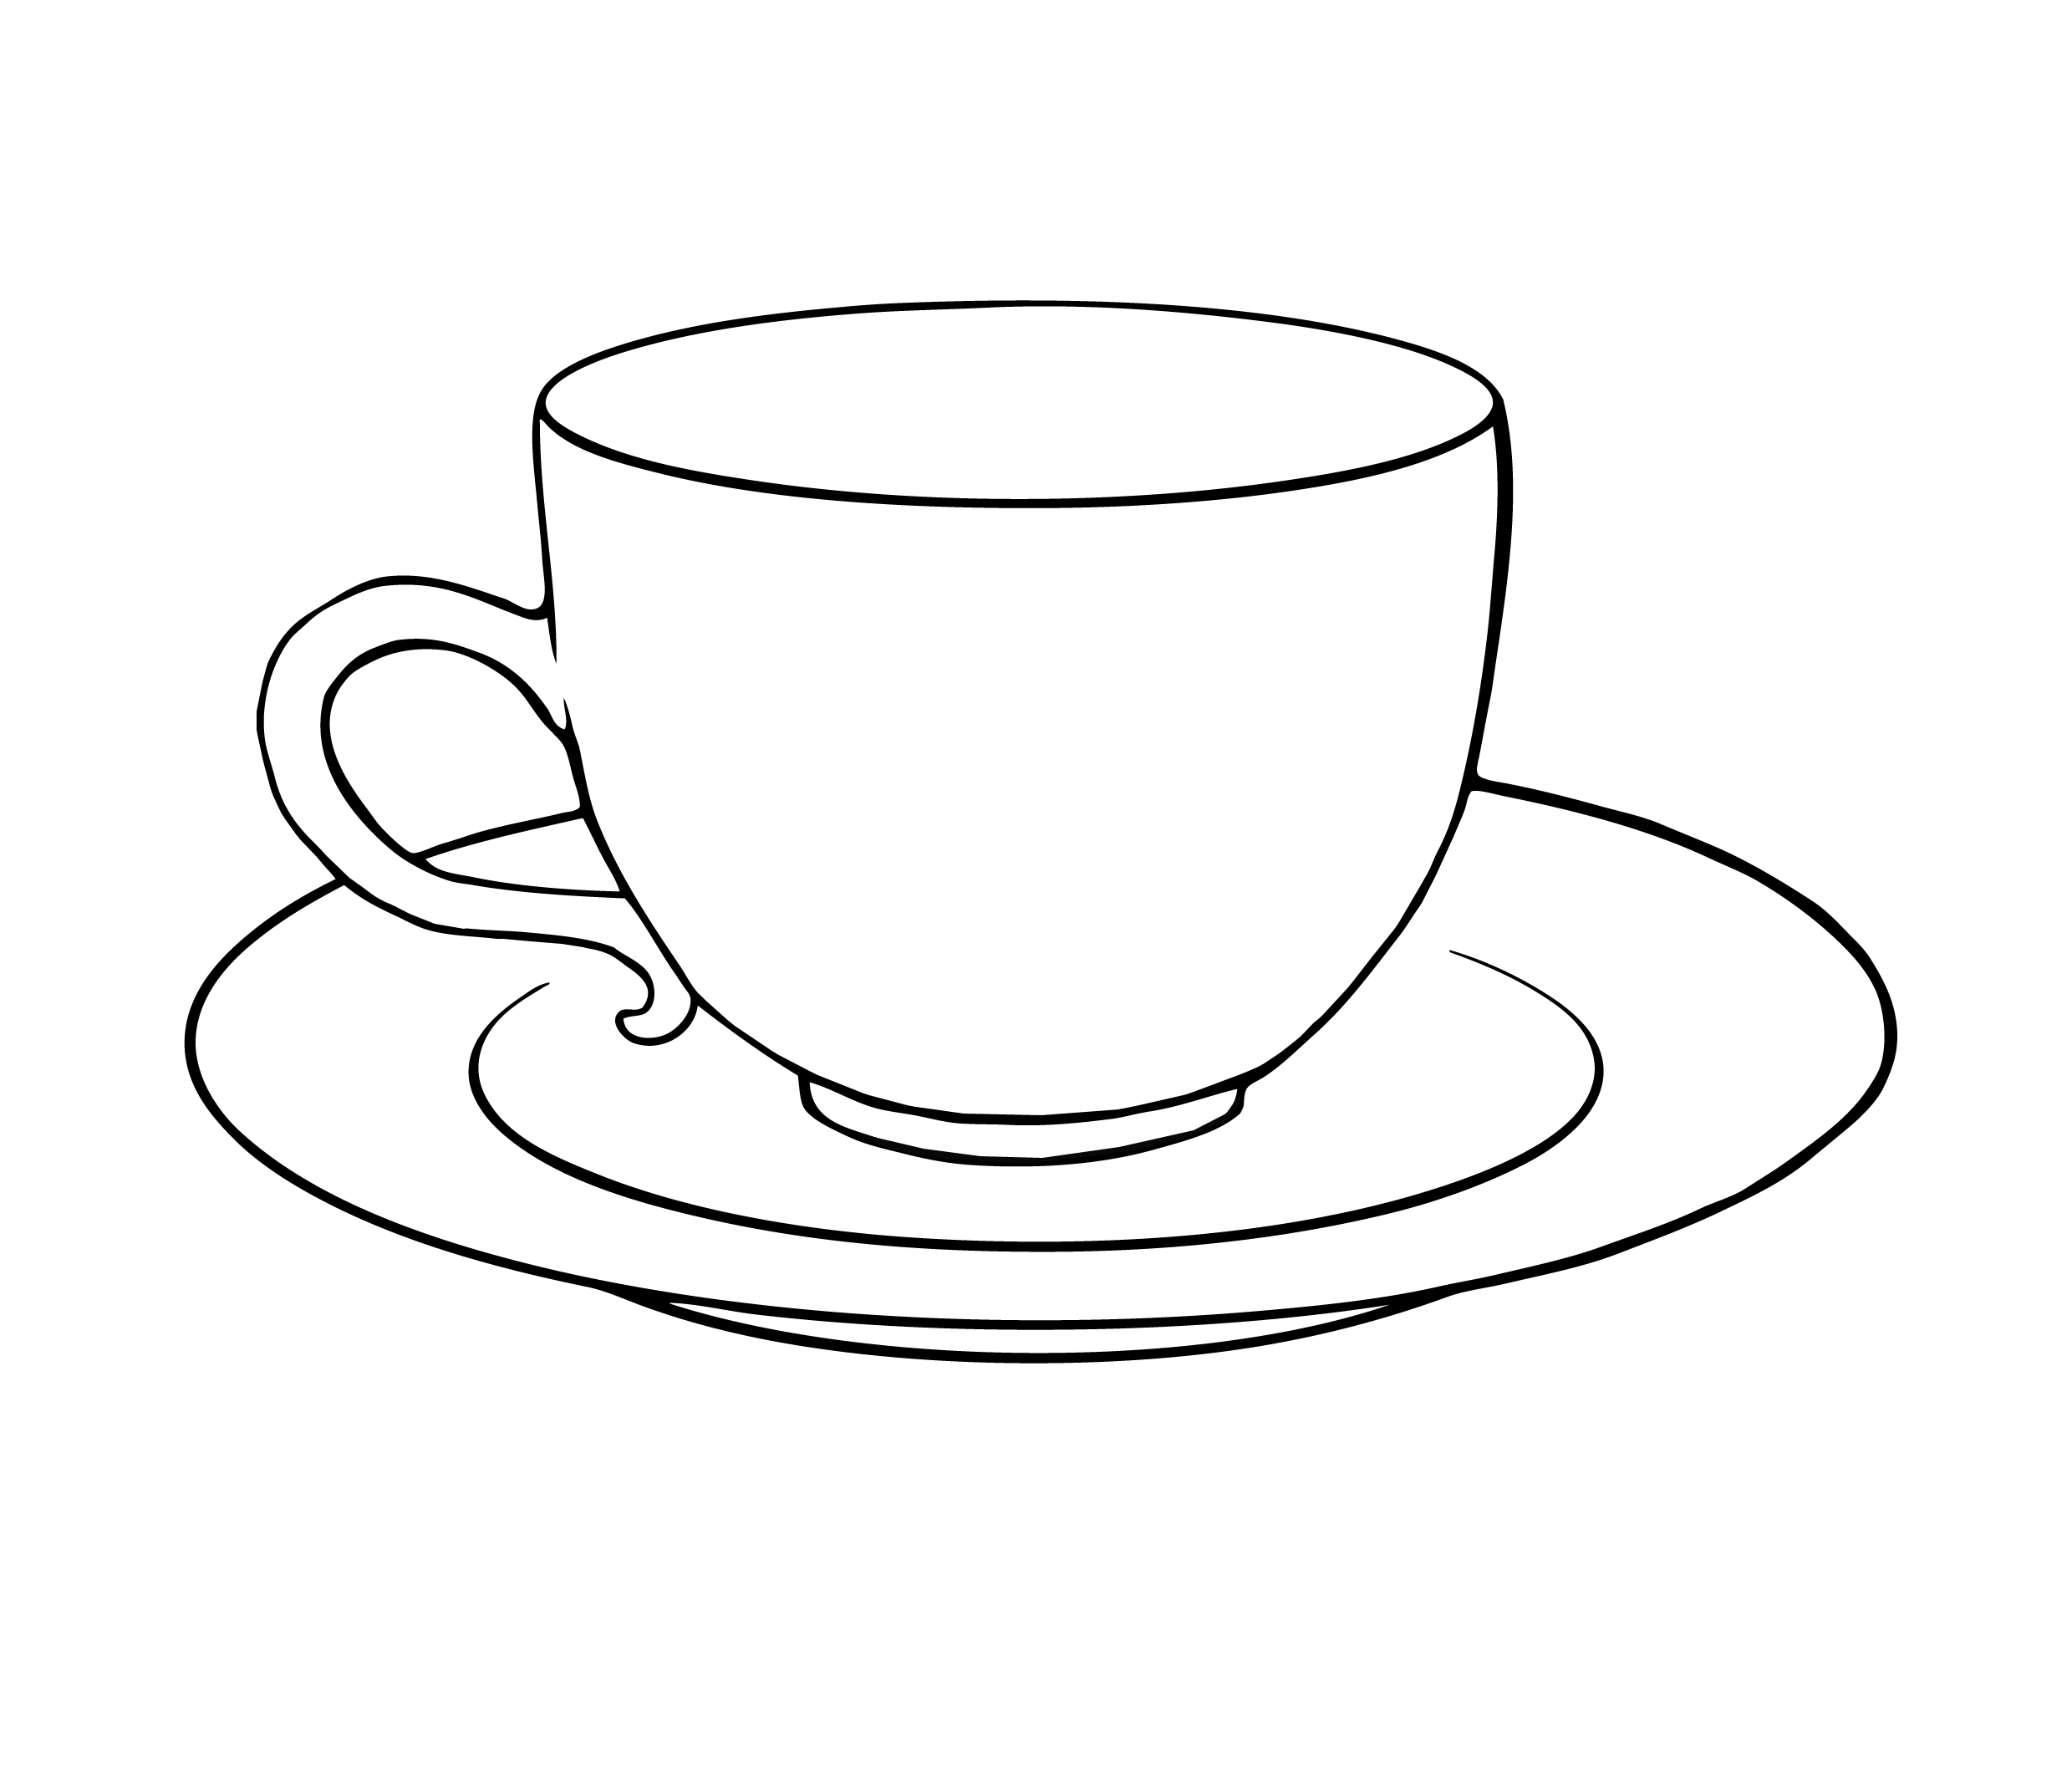 Teacup clipart british And Coloring Saucer Page Crafty